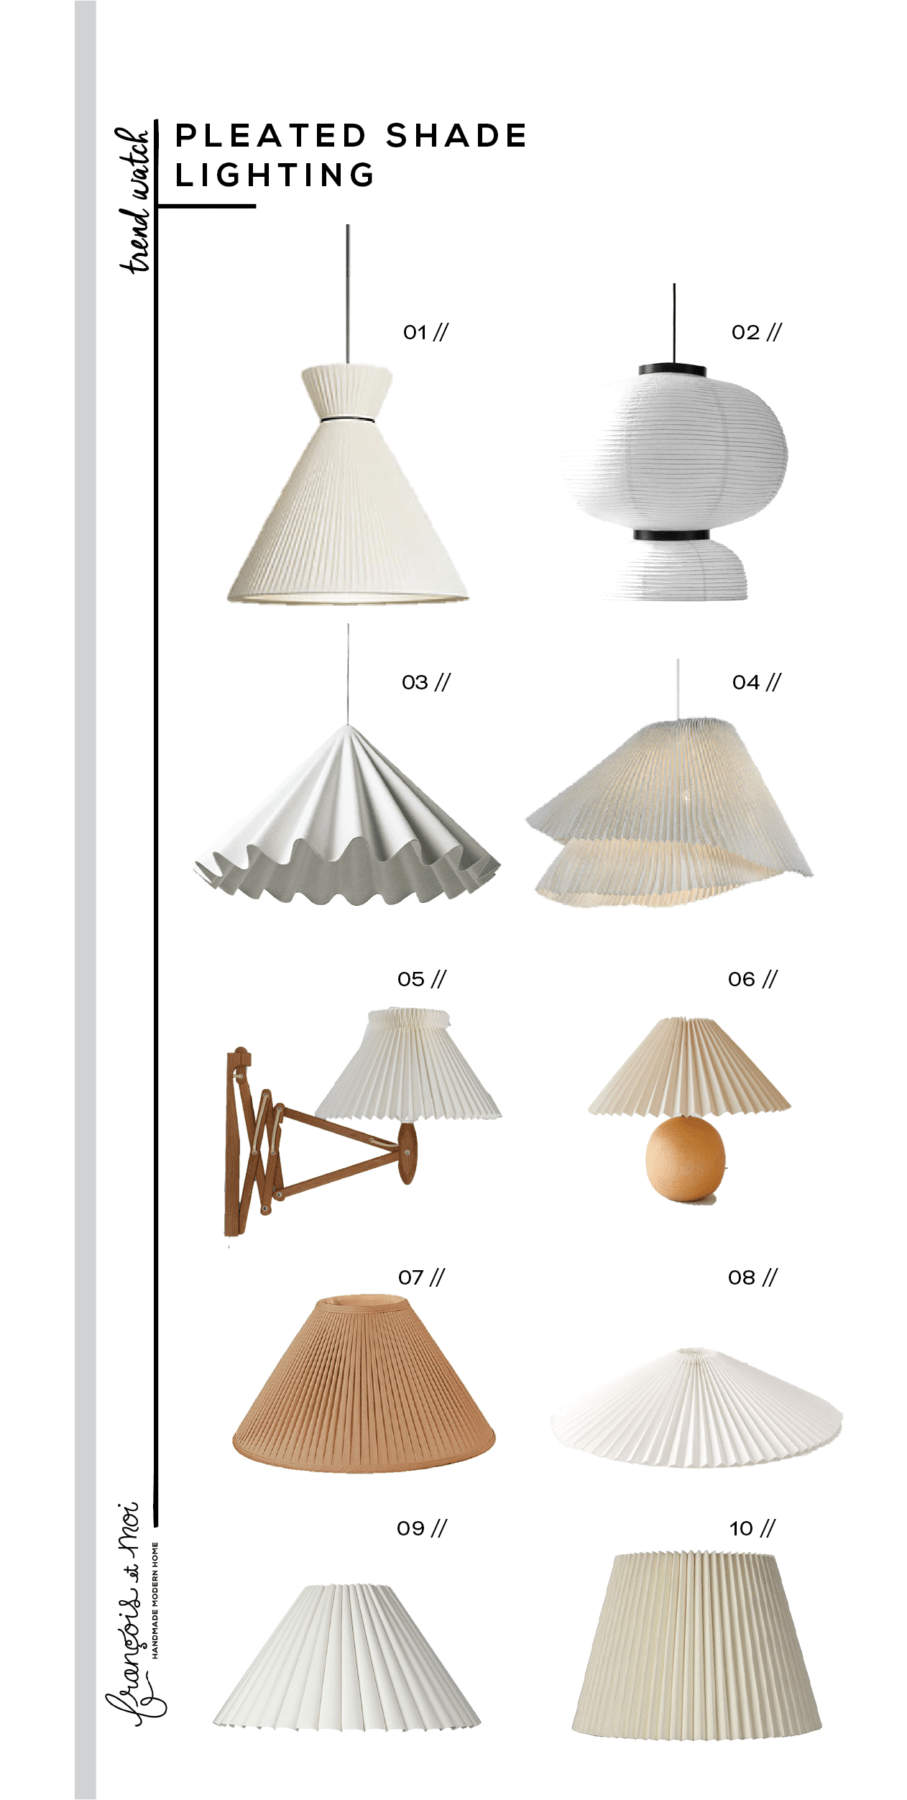 New trends: a pendant light shades